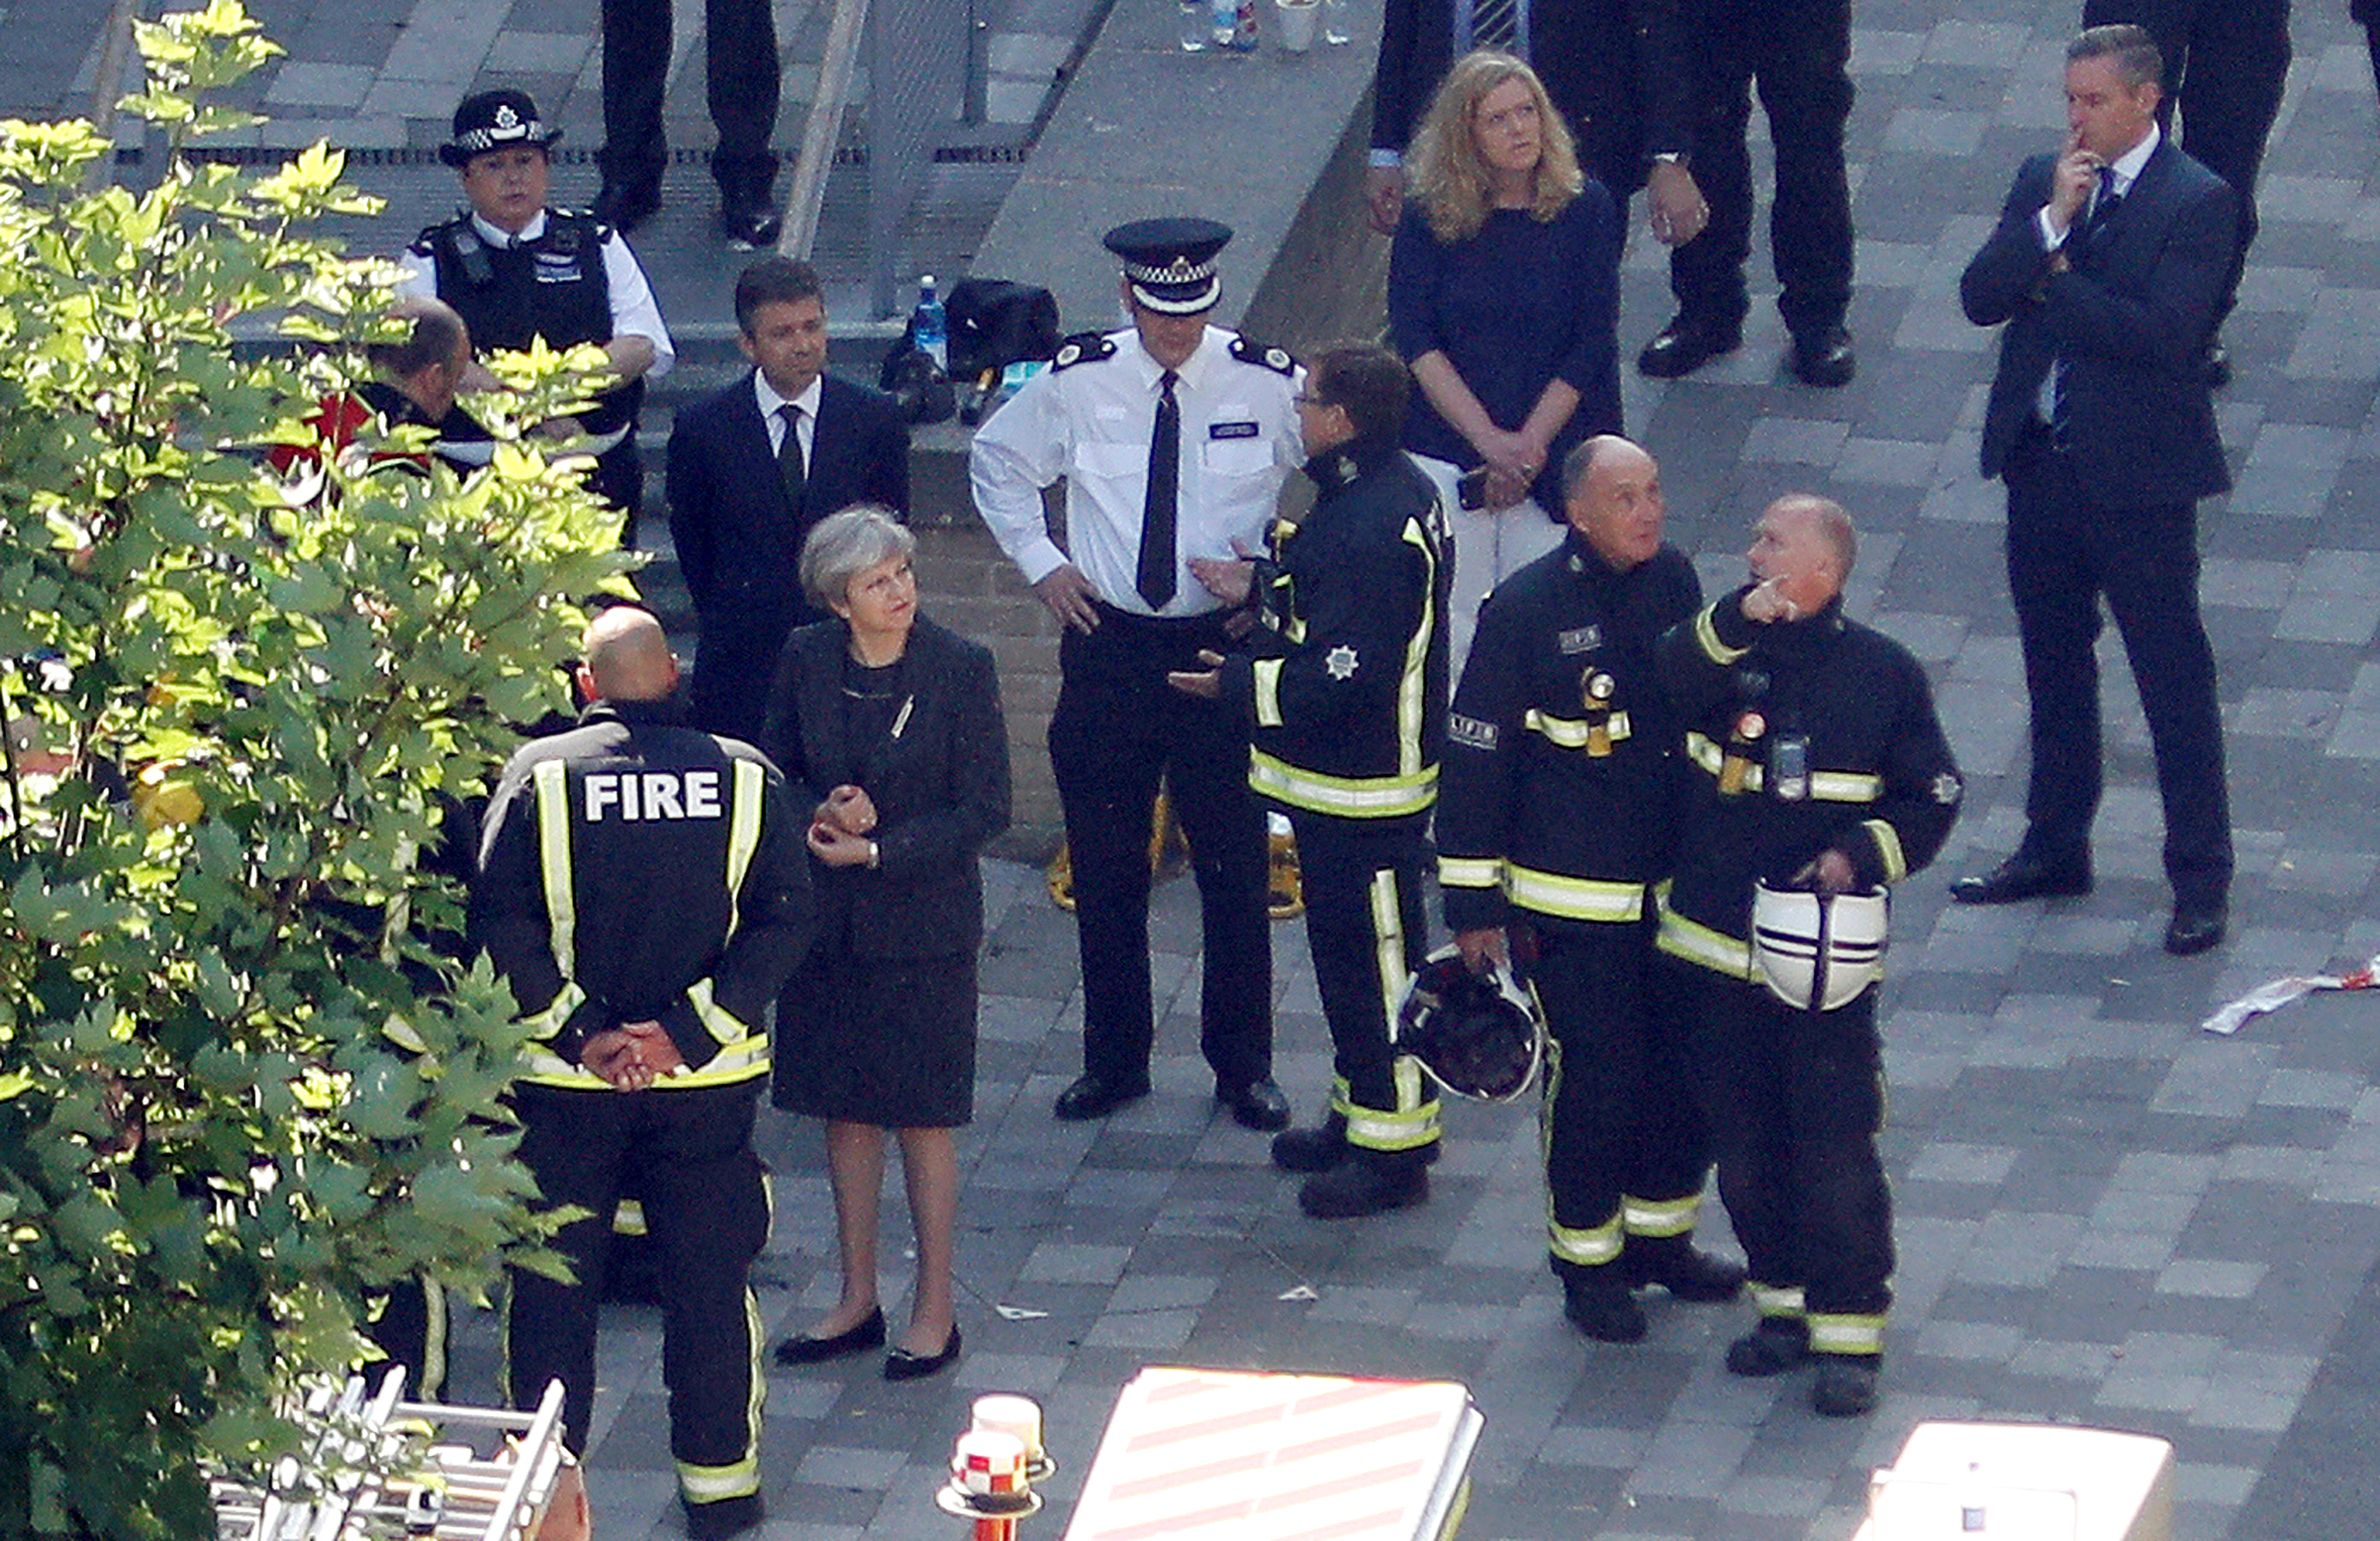 Britain's Prime Minister, Theresa May, visits the scene of a tower block which was destroyed in a fire disaster, in north Kensington, West London, June 15, 2017.